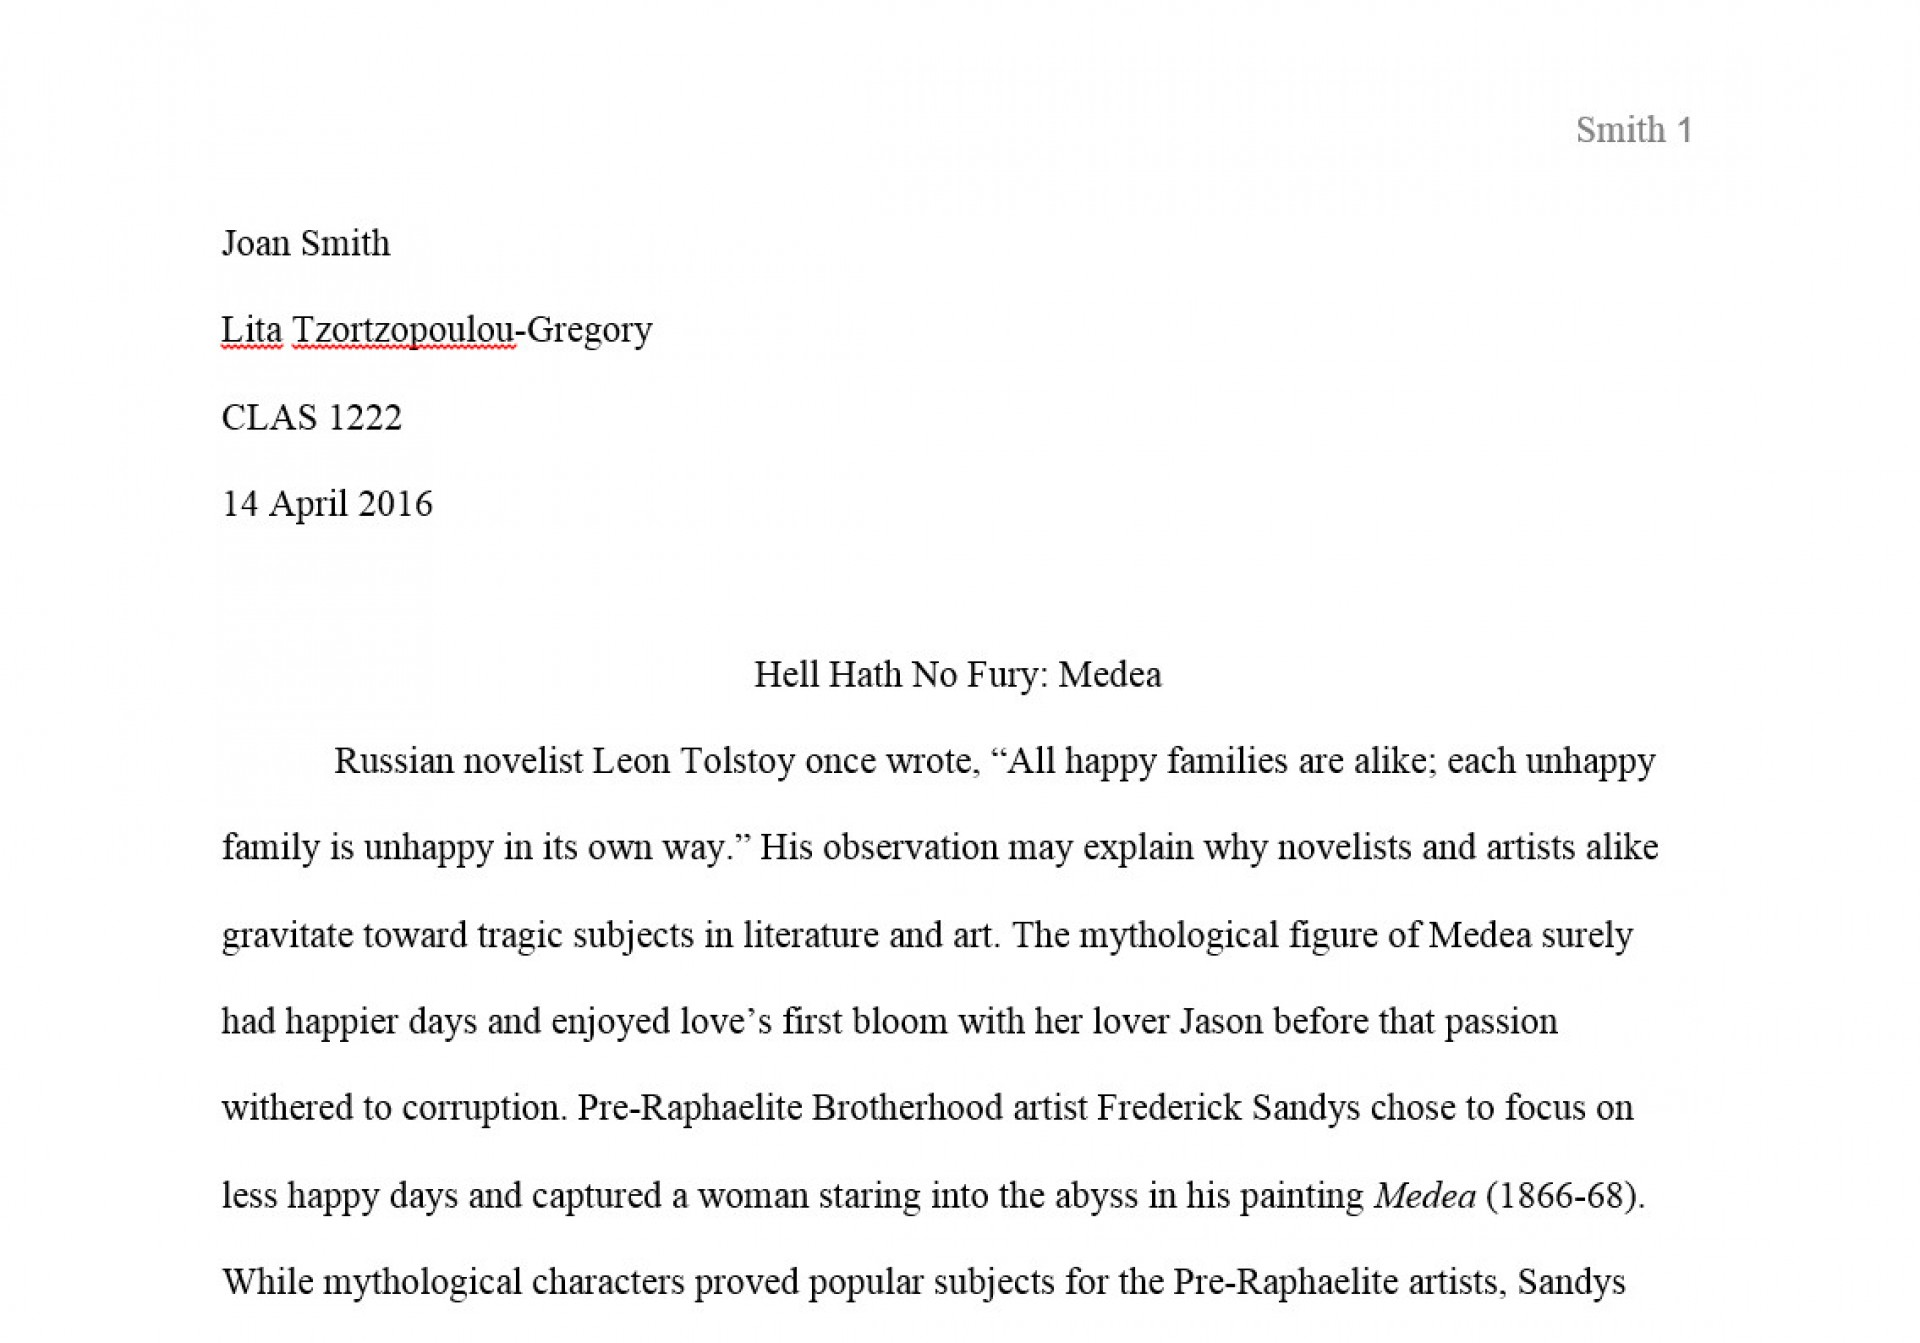 009 Samplefirstpagemla Mla Research Paper Citation Imposing Format In Text 1920